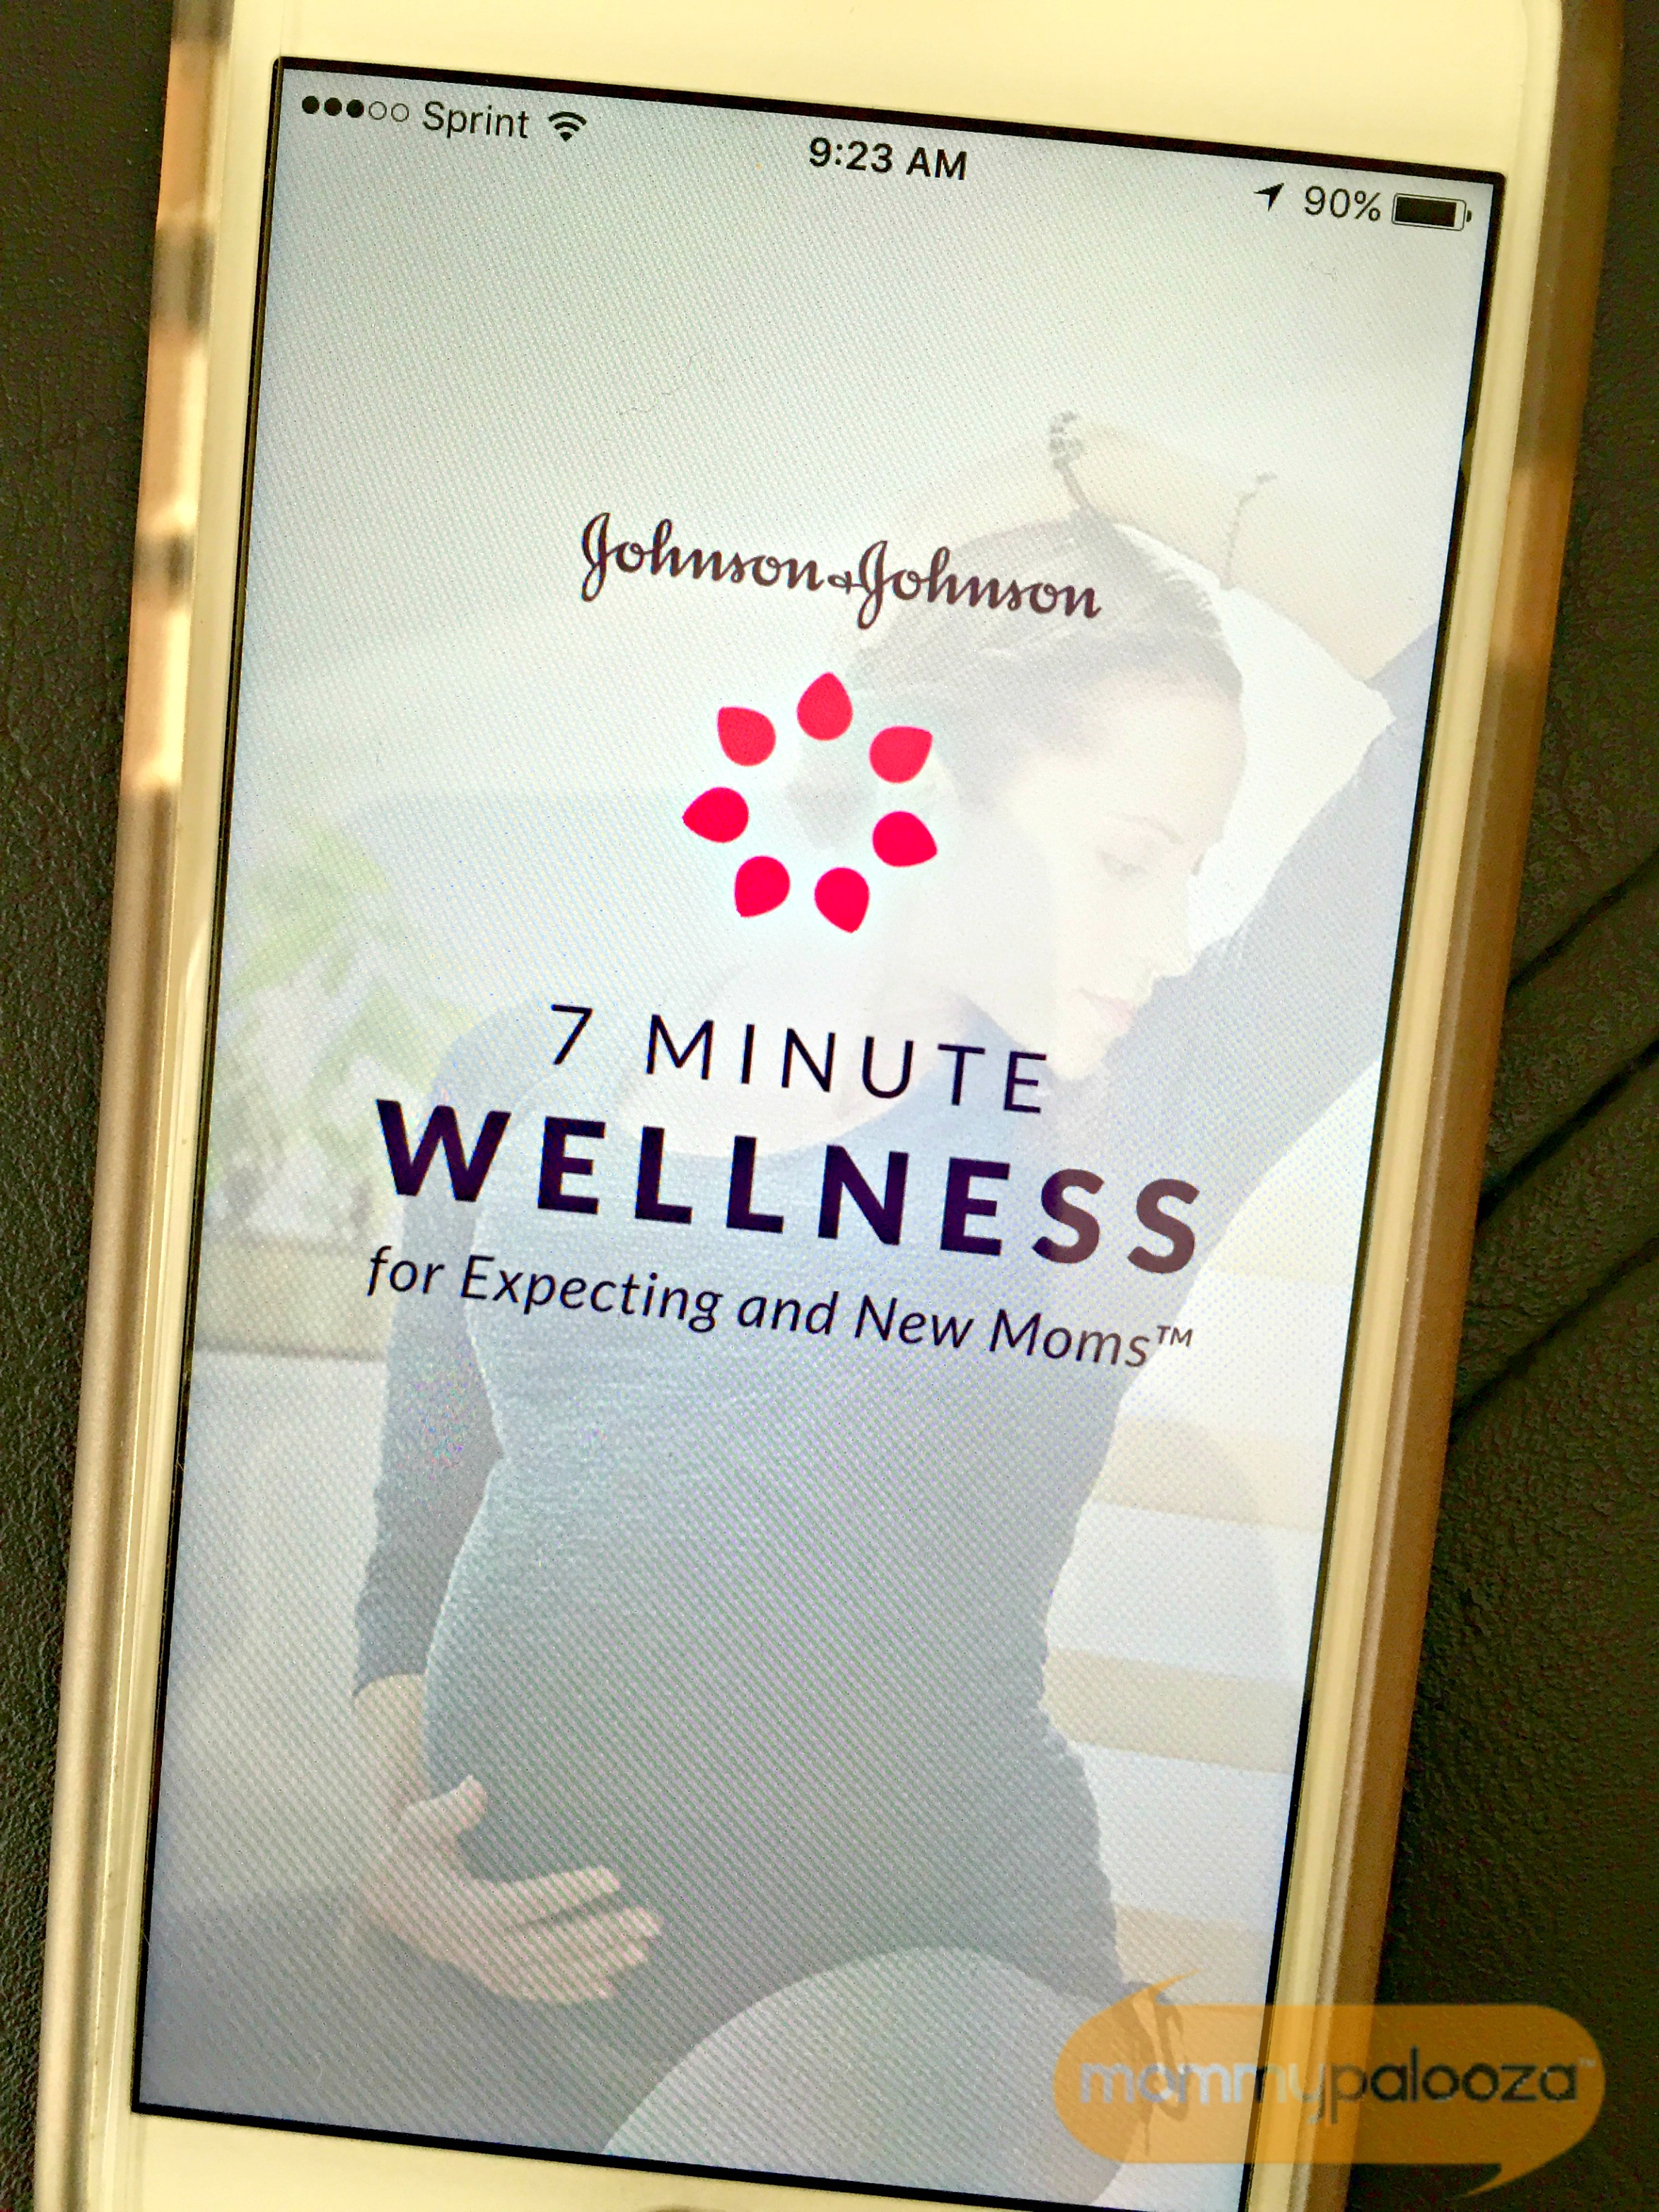 Johnson & Johnson 7 Minute Wellness For Expecting and New Moms™ App #7MinMomApp